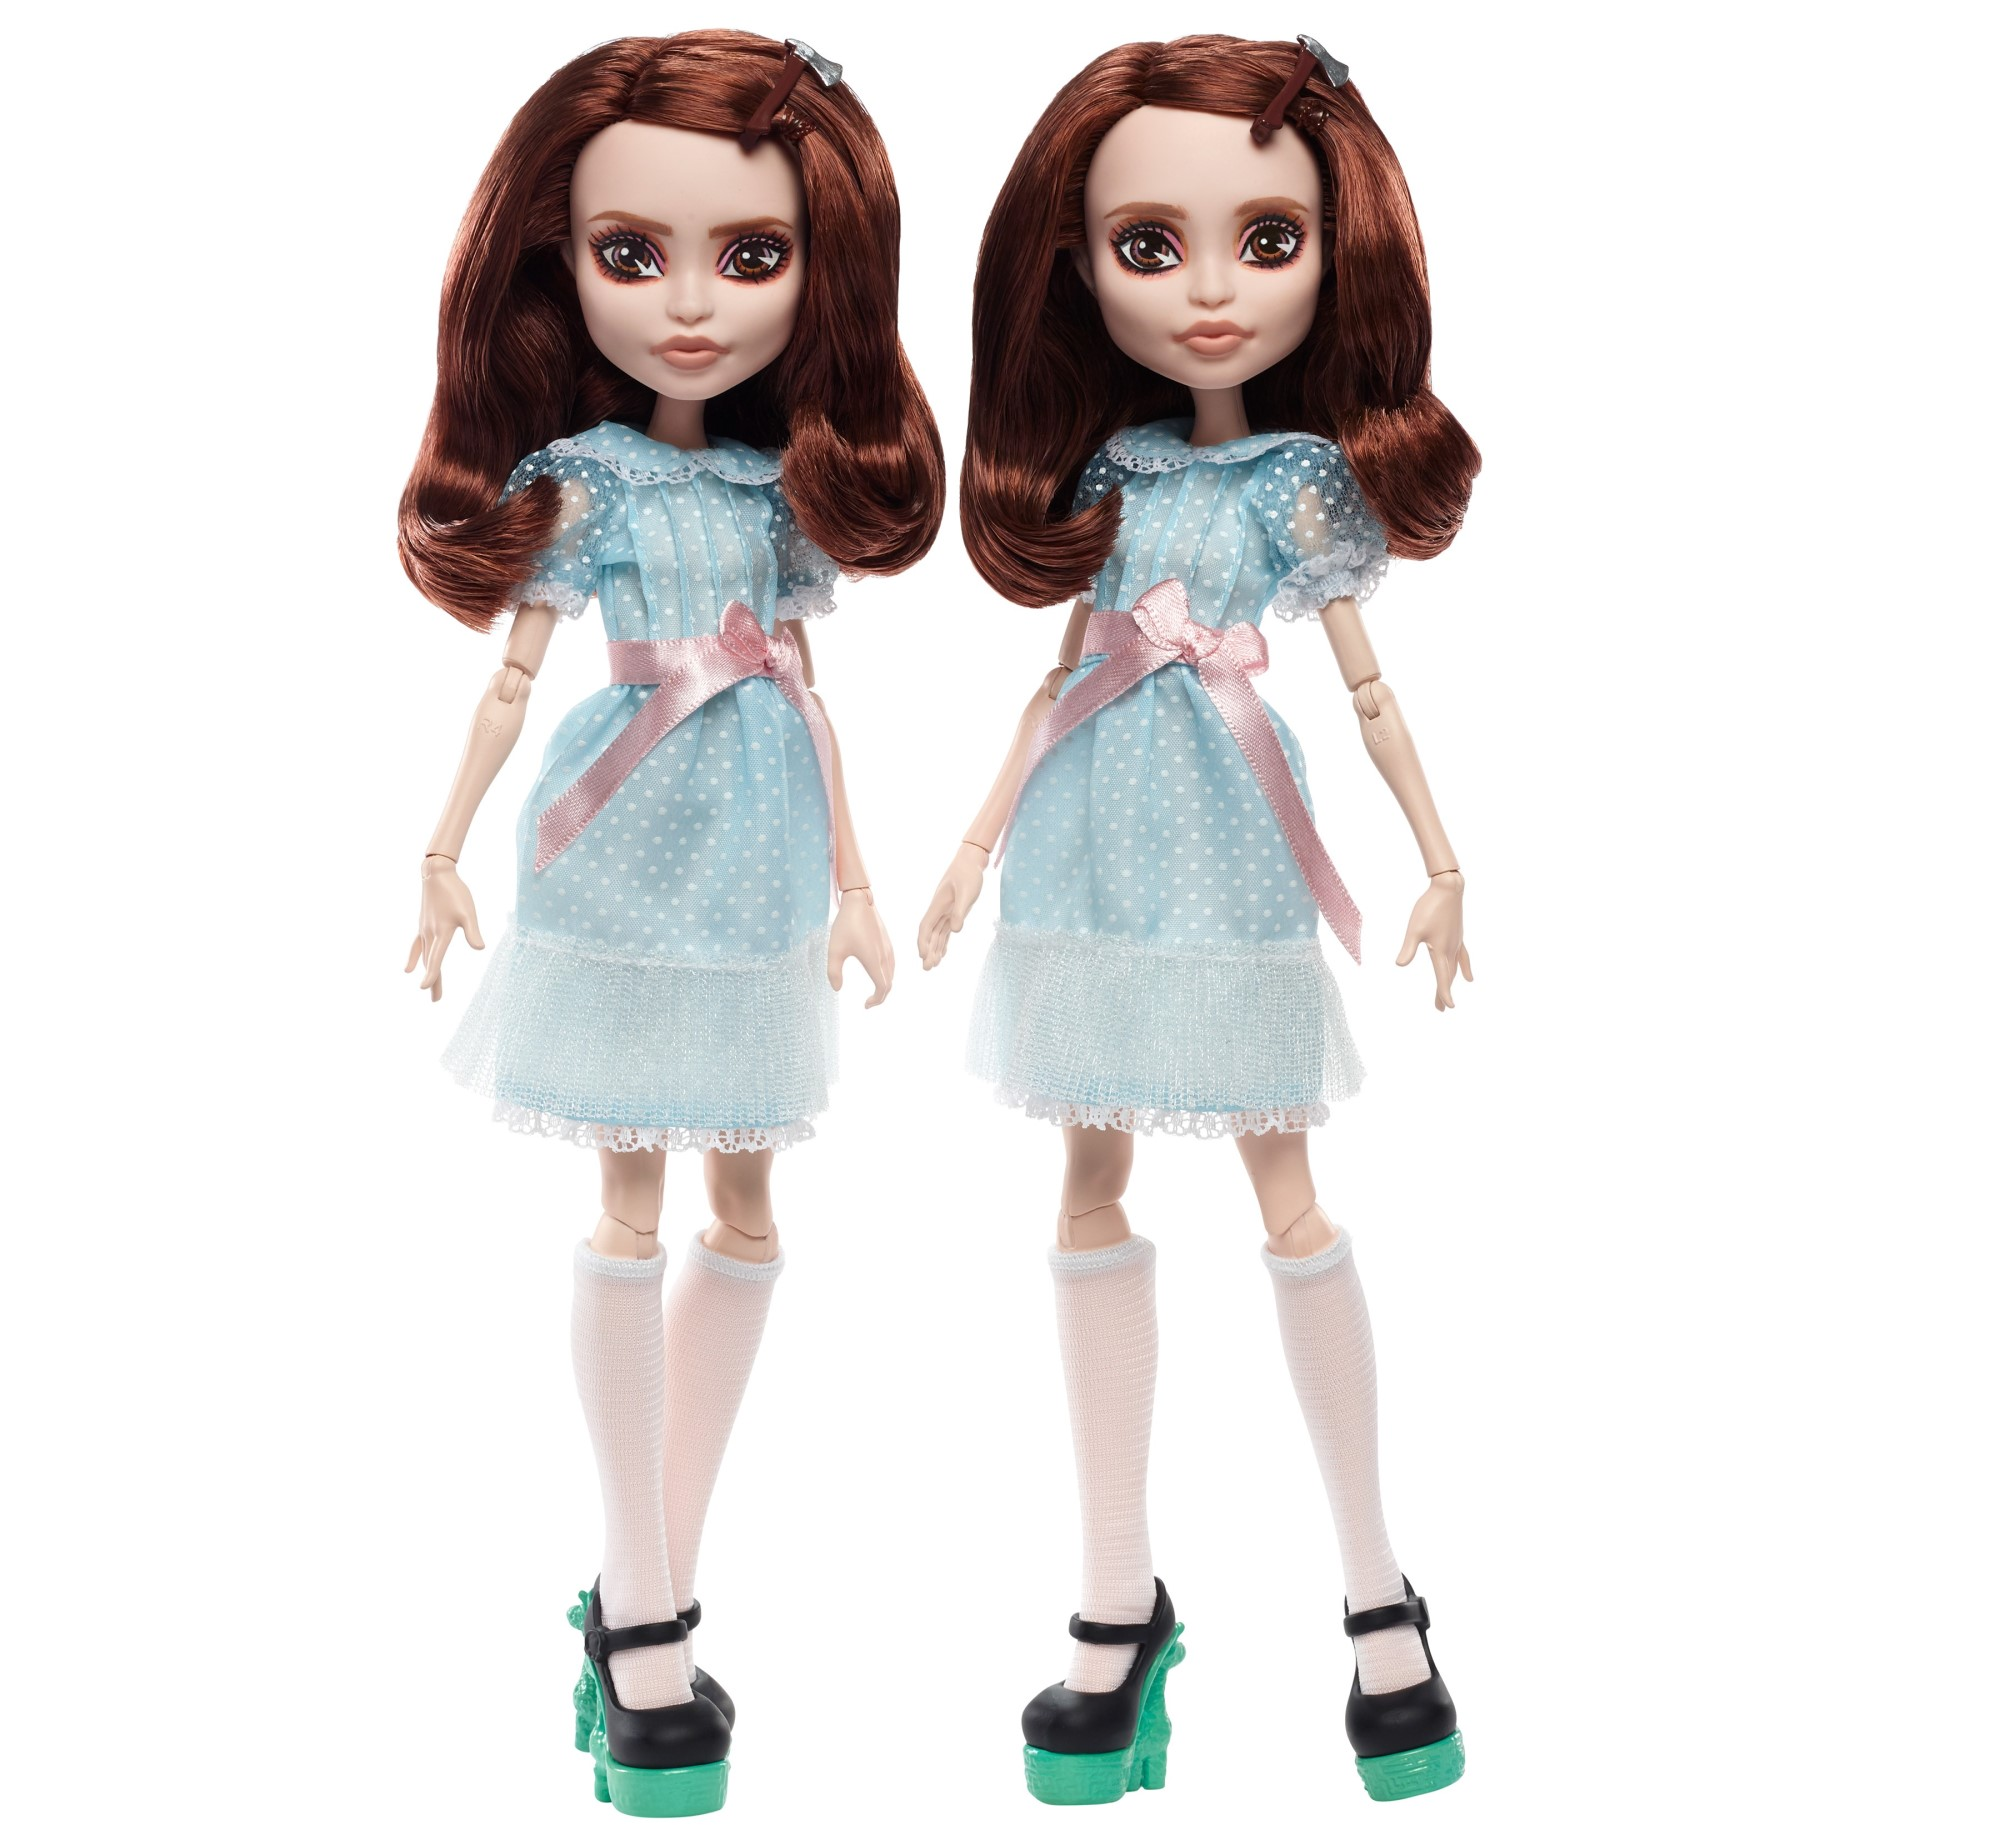 Mattel turns Pennywise and The Grady Twins into Monster High-style dolls 18